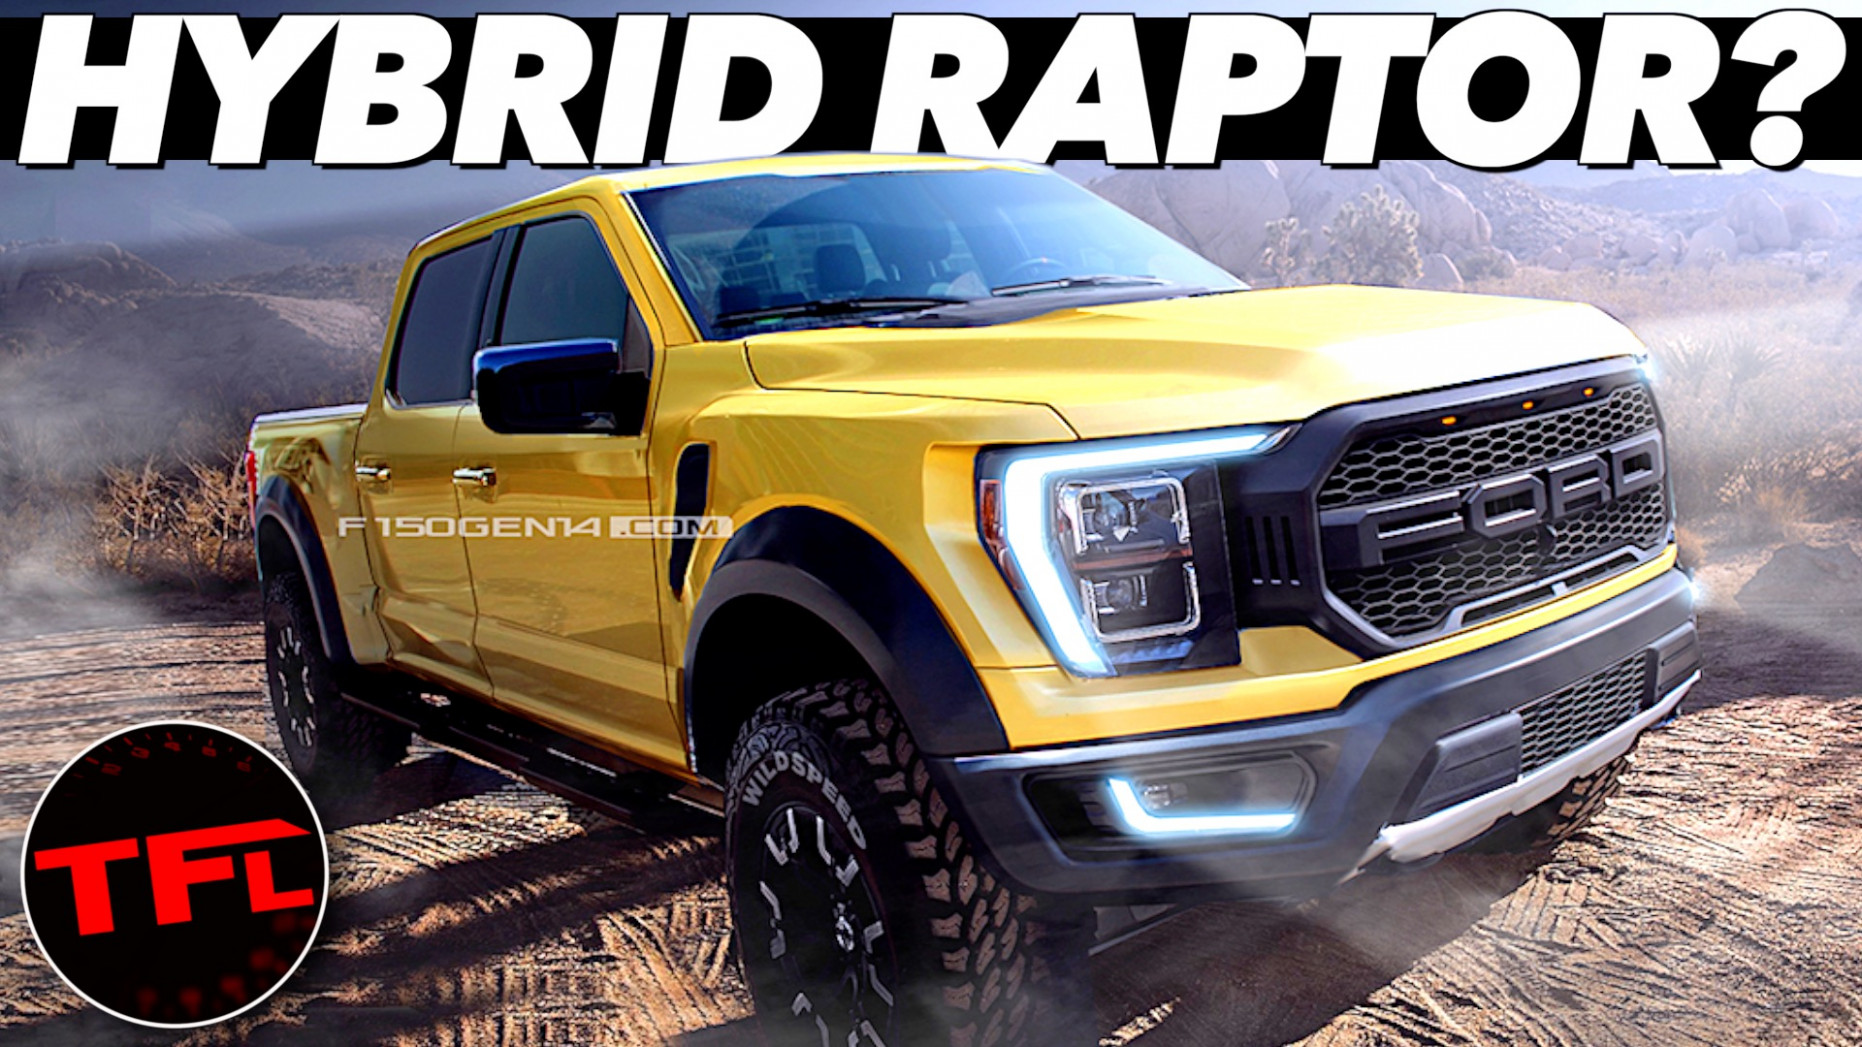 Prices Ford F150 Raptor 2022